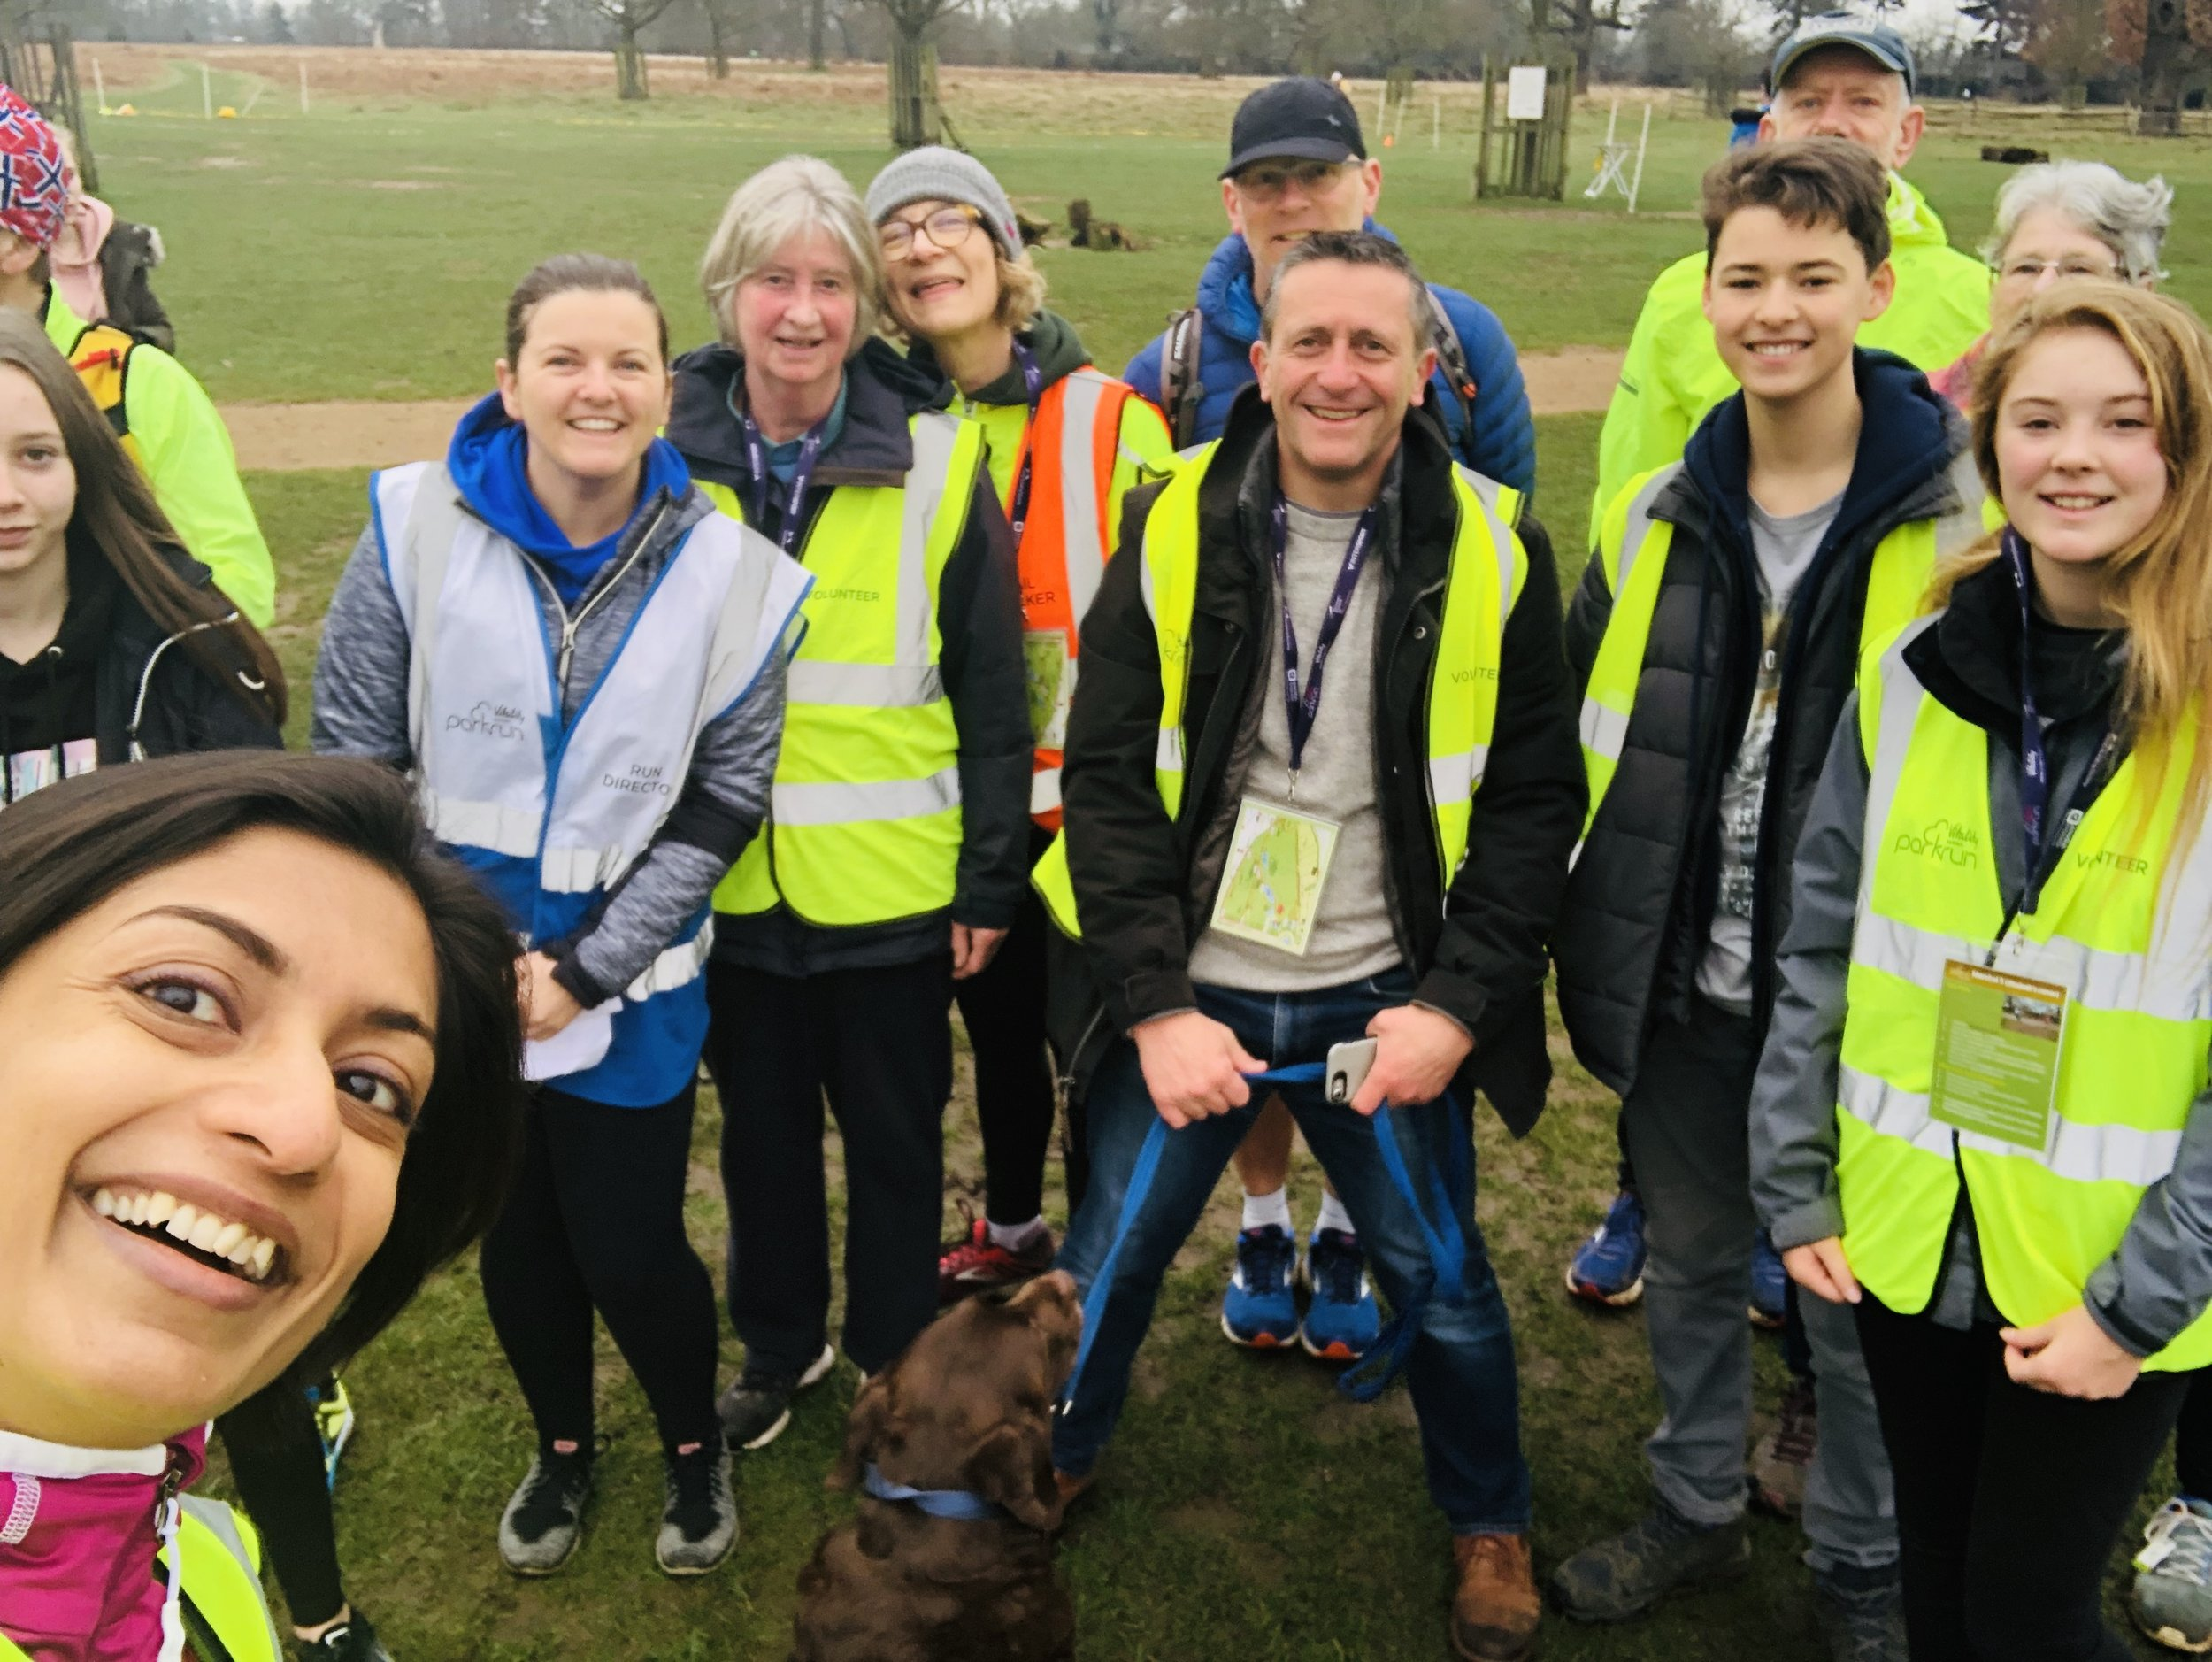 Volunteers at Parkrun start gathering and getting the park ready as early as 8 am itself! There is a lot to get done to make this run fun, organised and seamless (Image: Sumi Sarma)